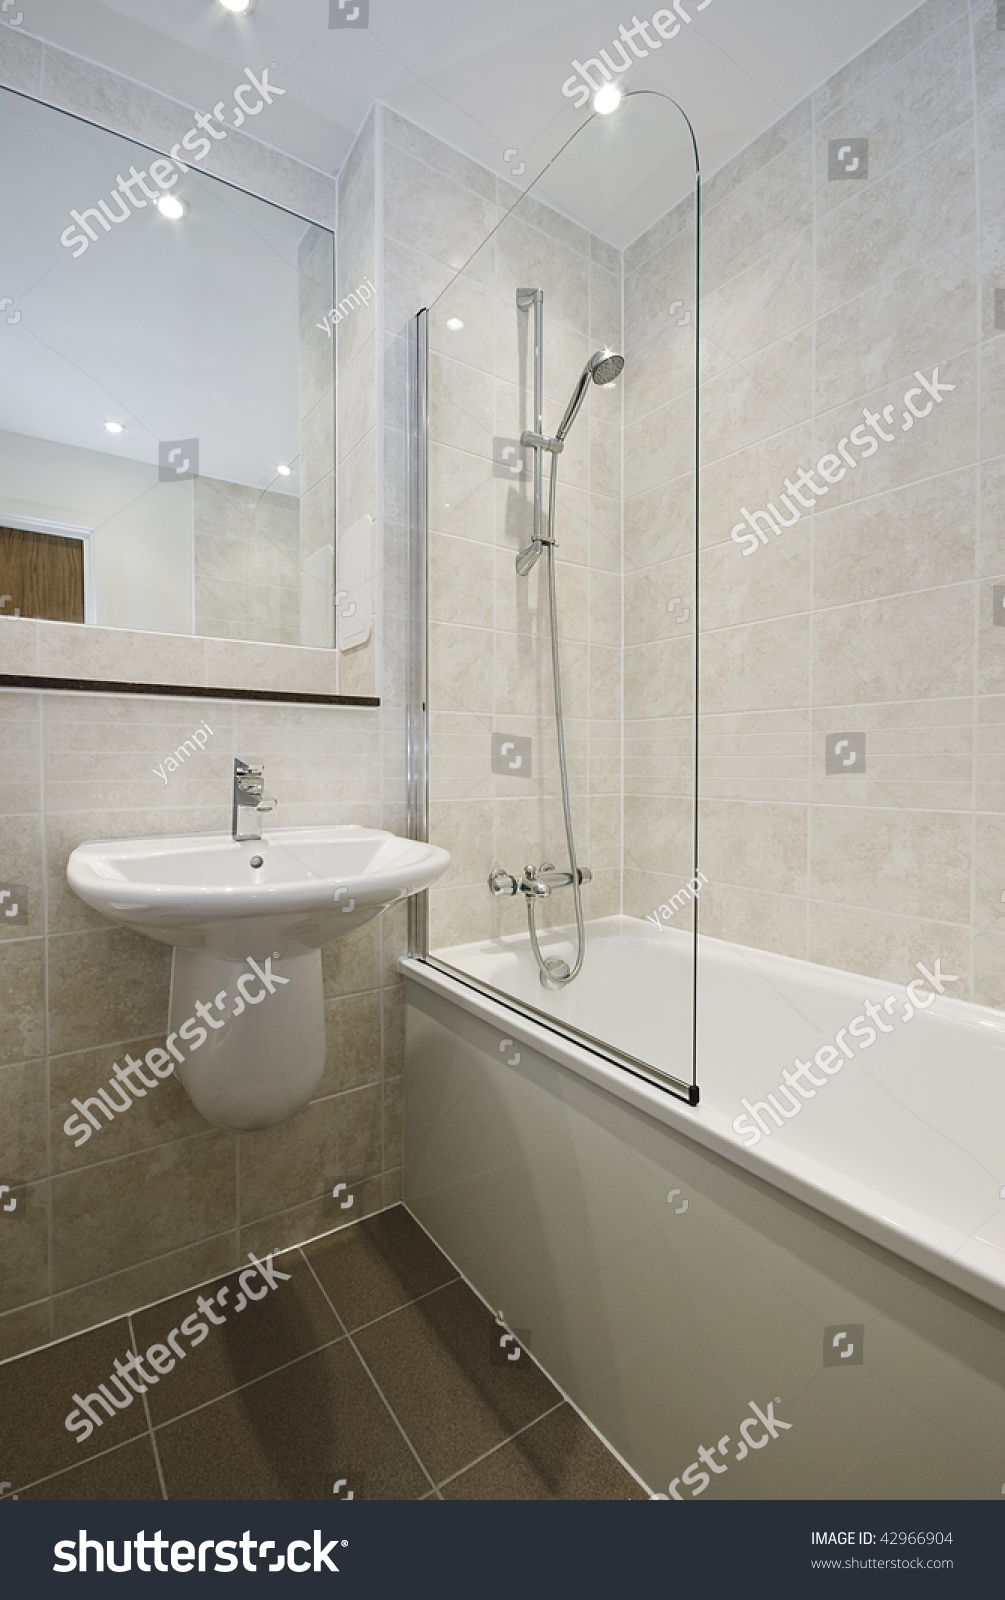 Modern Bathroom In White With Floor To Ceiling Ceramic Tiles Ez Canvas